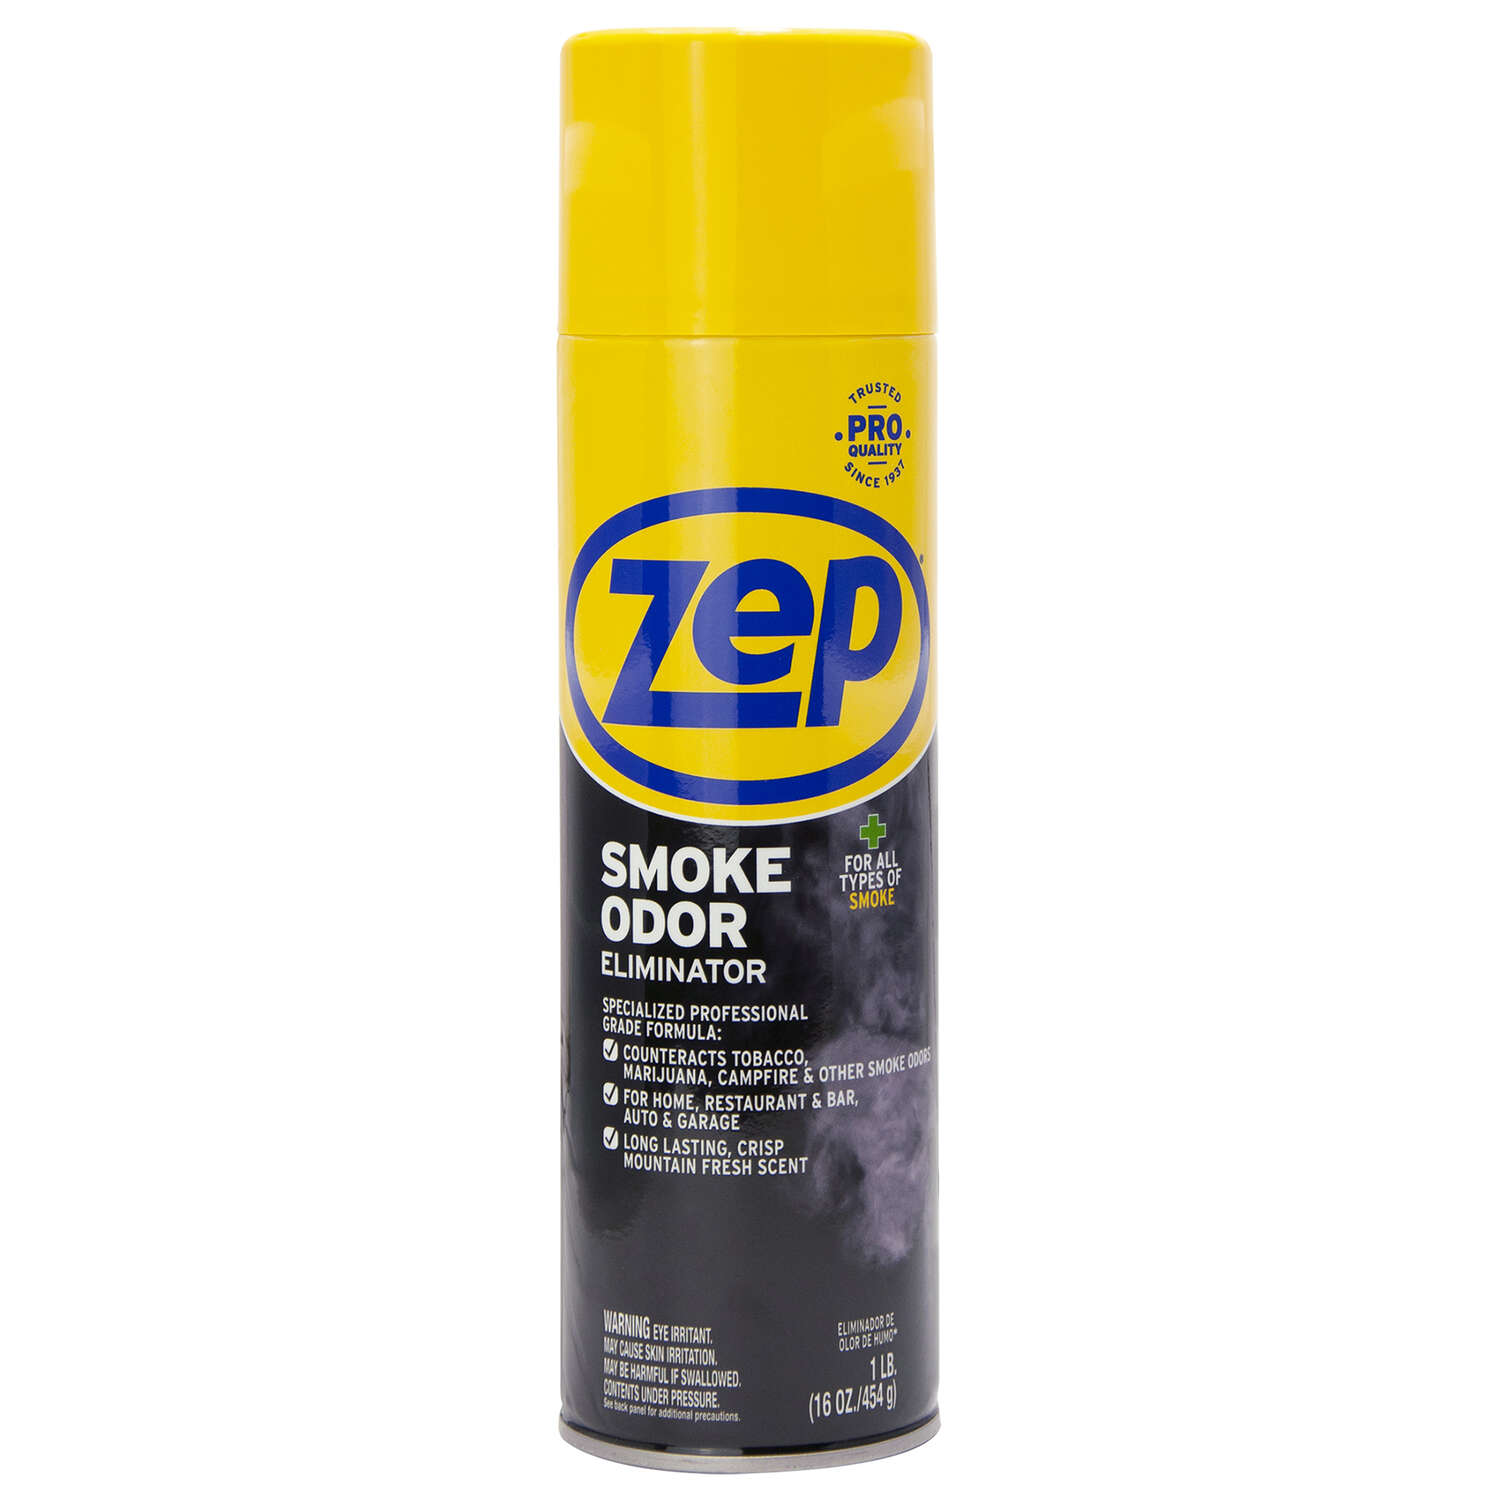 Zep  Fresh Clean Scent Smoke Odor Eliminator  16 oz. Liquid